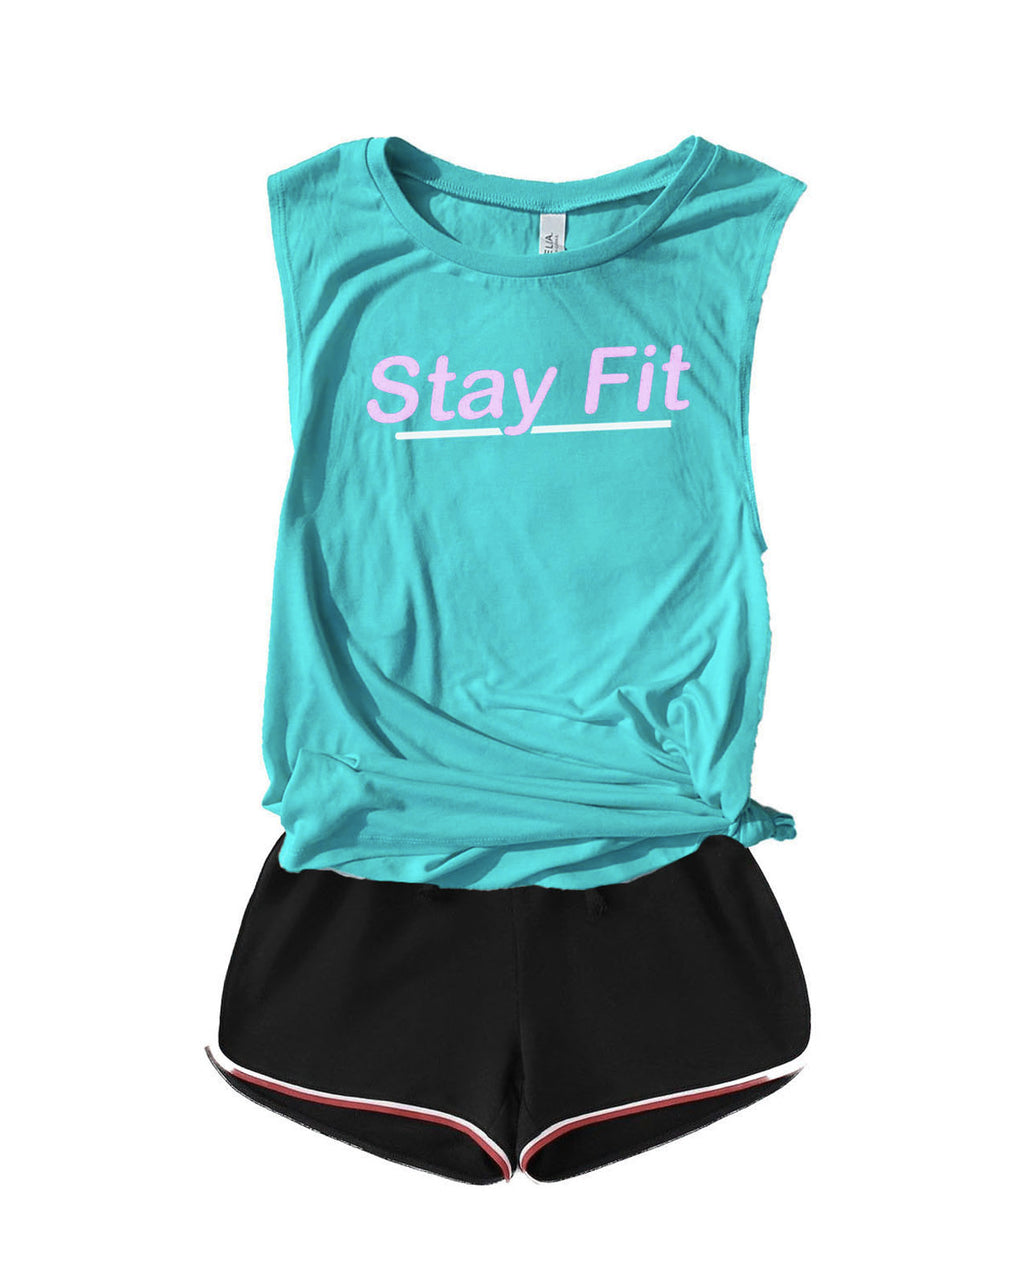 STAY FIT TANK TOP